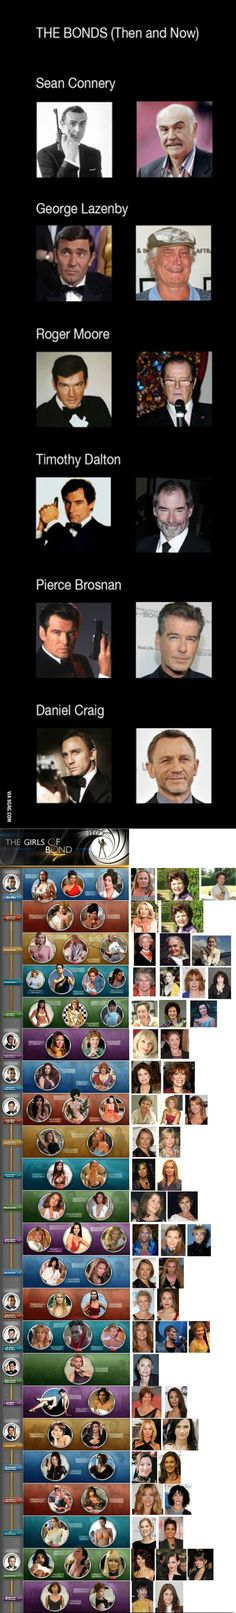 James Bond THEN and NOW